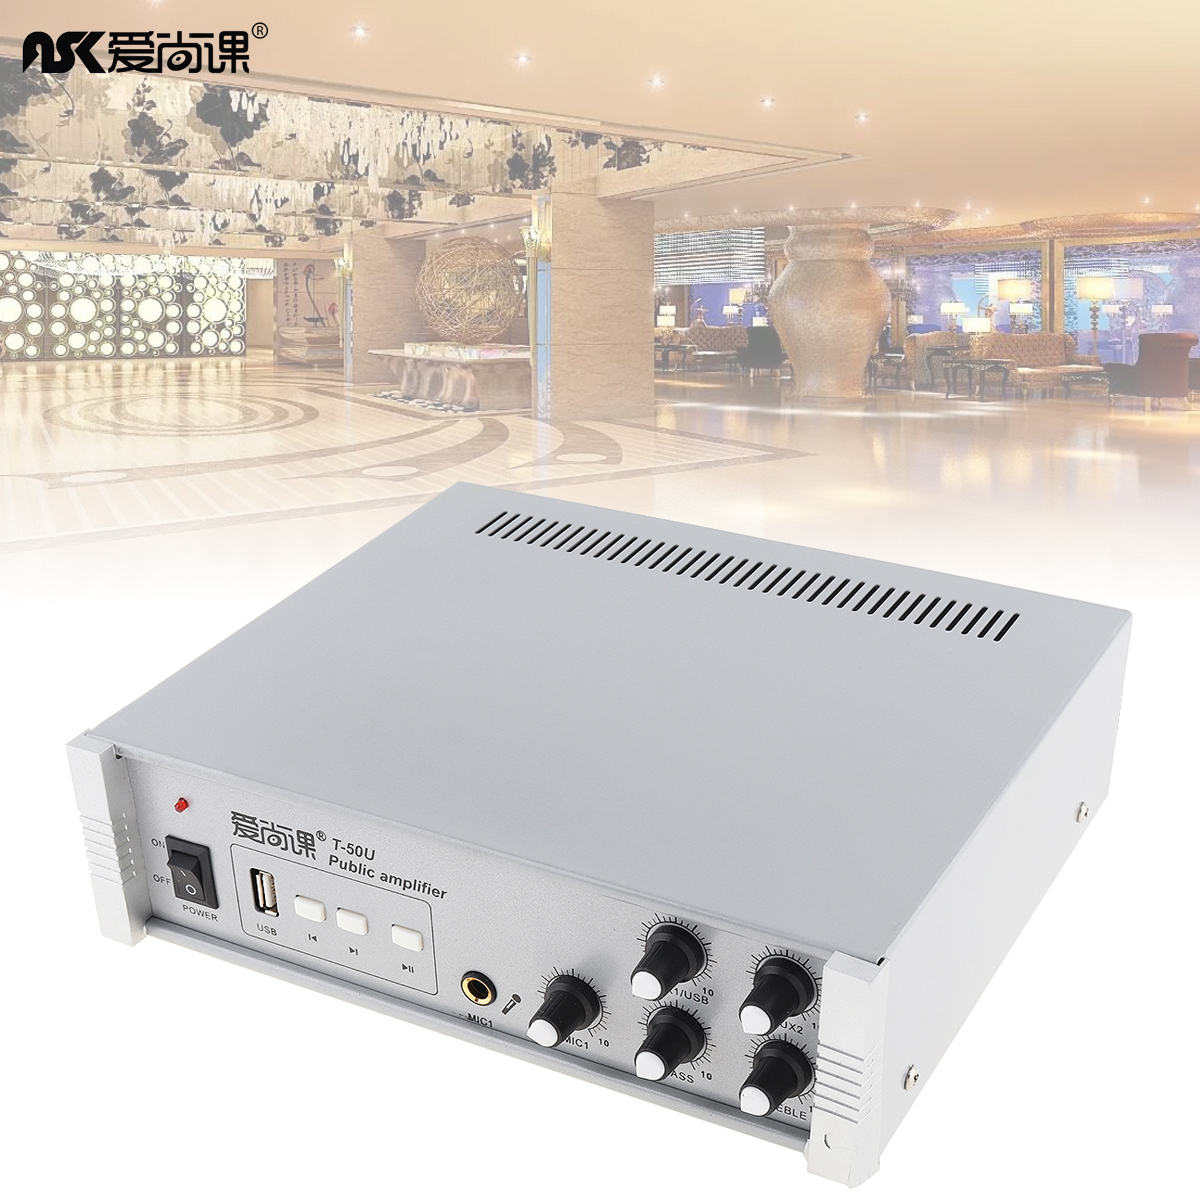 T 50U 50W Broadcast Music Constant Pressure Amplifier with USB Playback Function for Background Music System